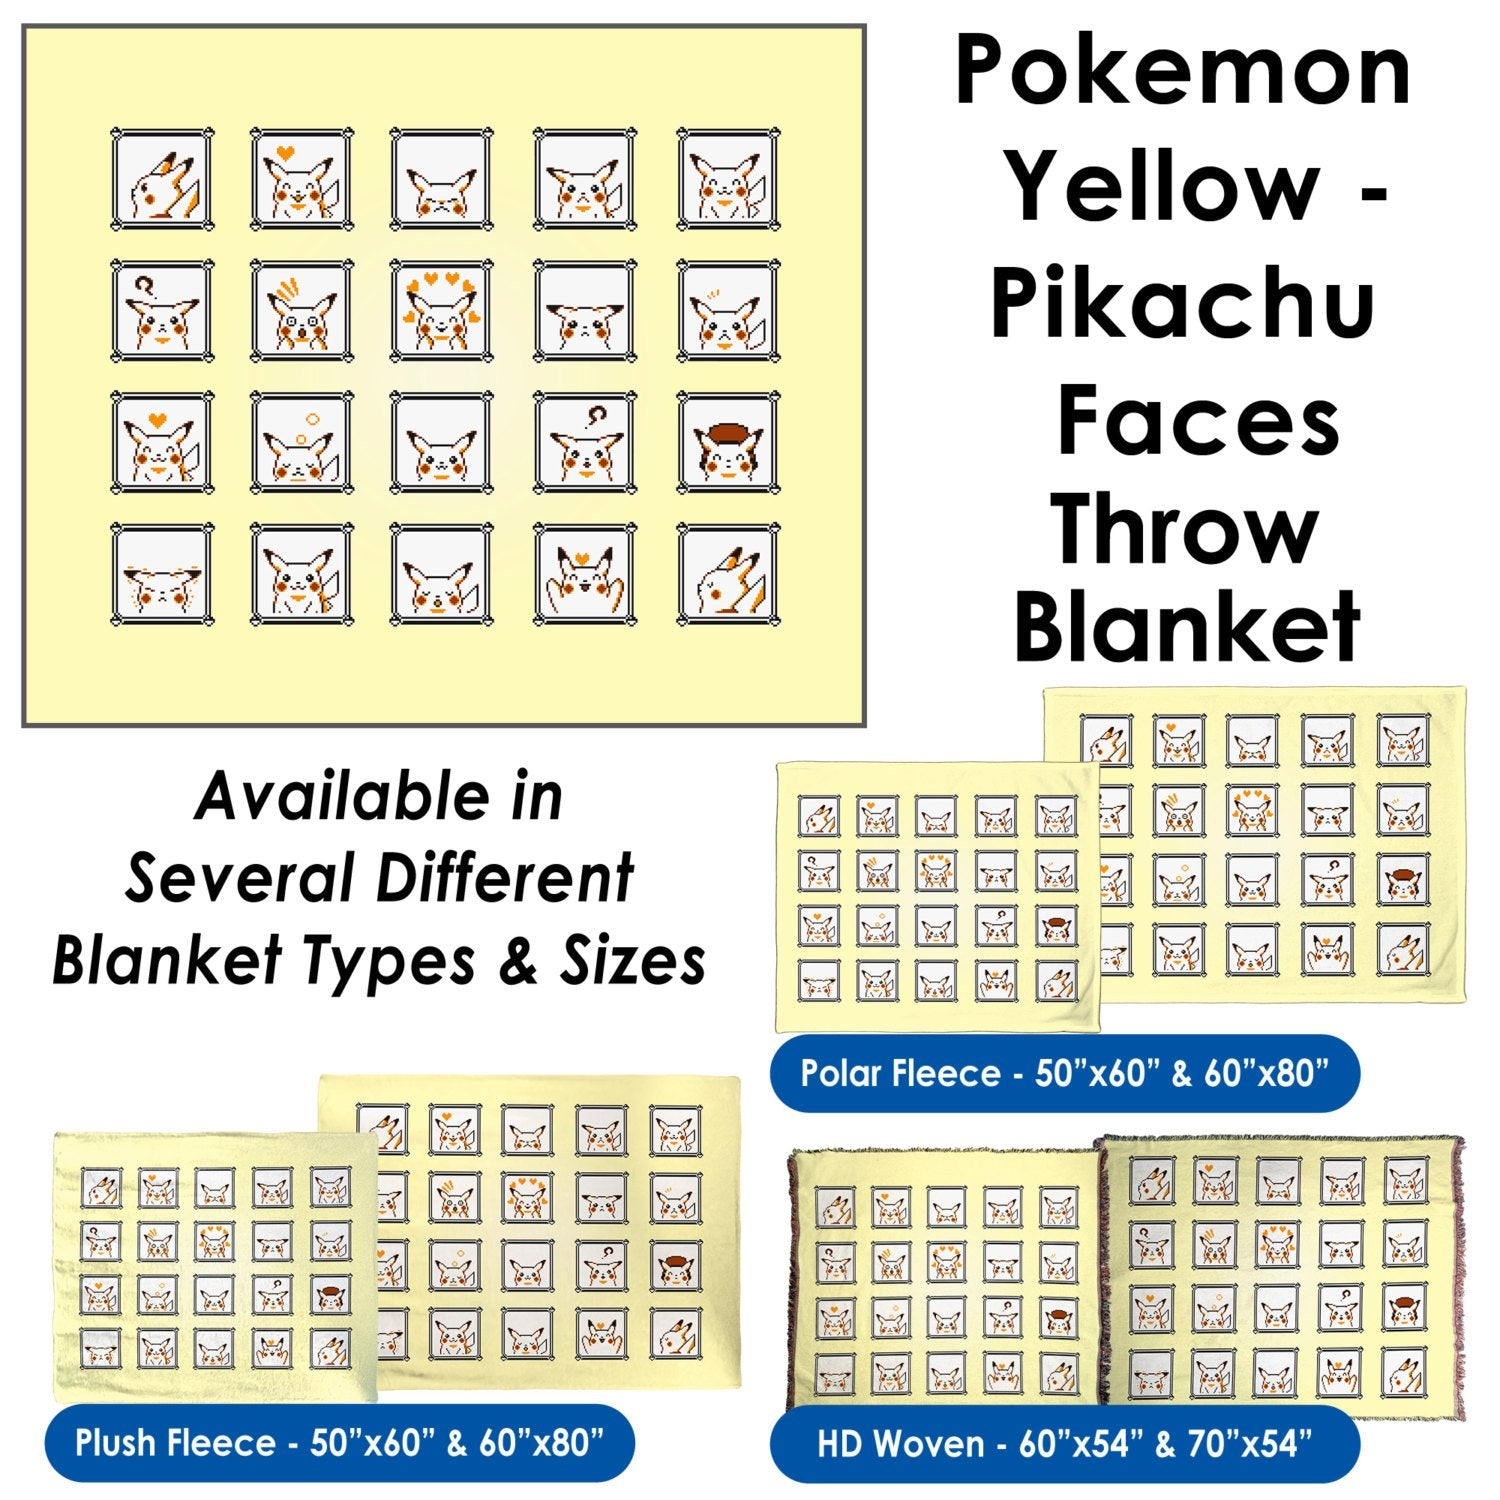 Pokemon Yellow, Pikachu Faces – Throw Blanket / Tapestry Wall Hanging